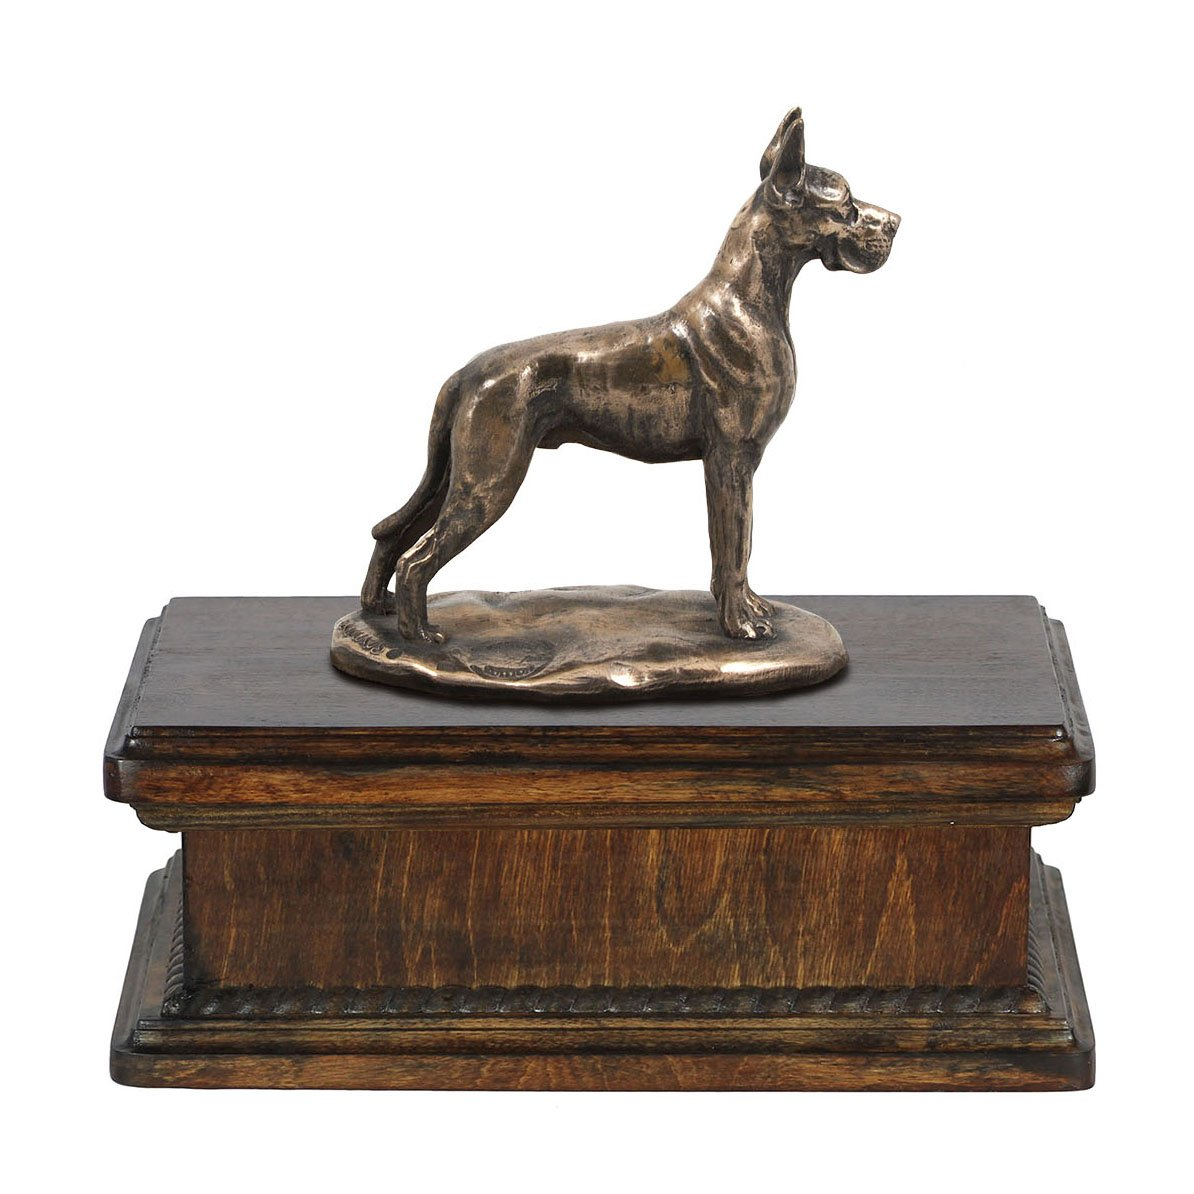 Great Dane (cropped), memorial, urn for dog's ashes, with dog statue, exclusive, ArtDog